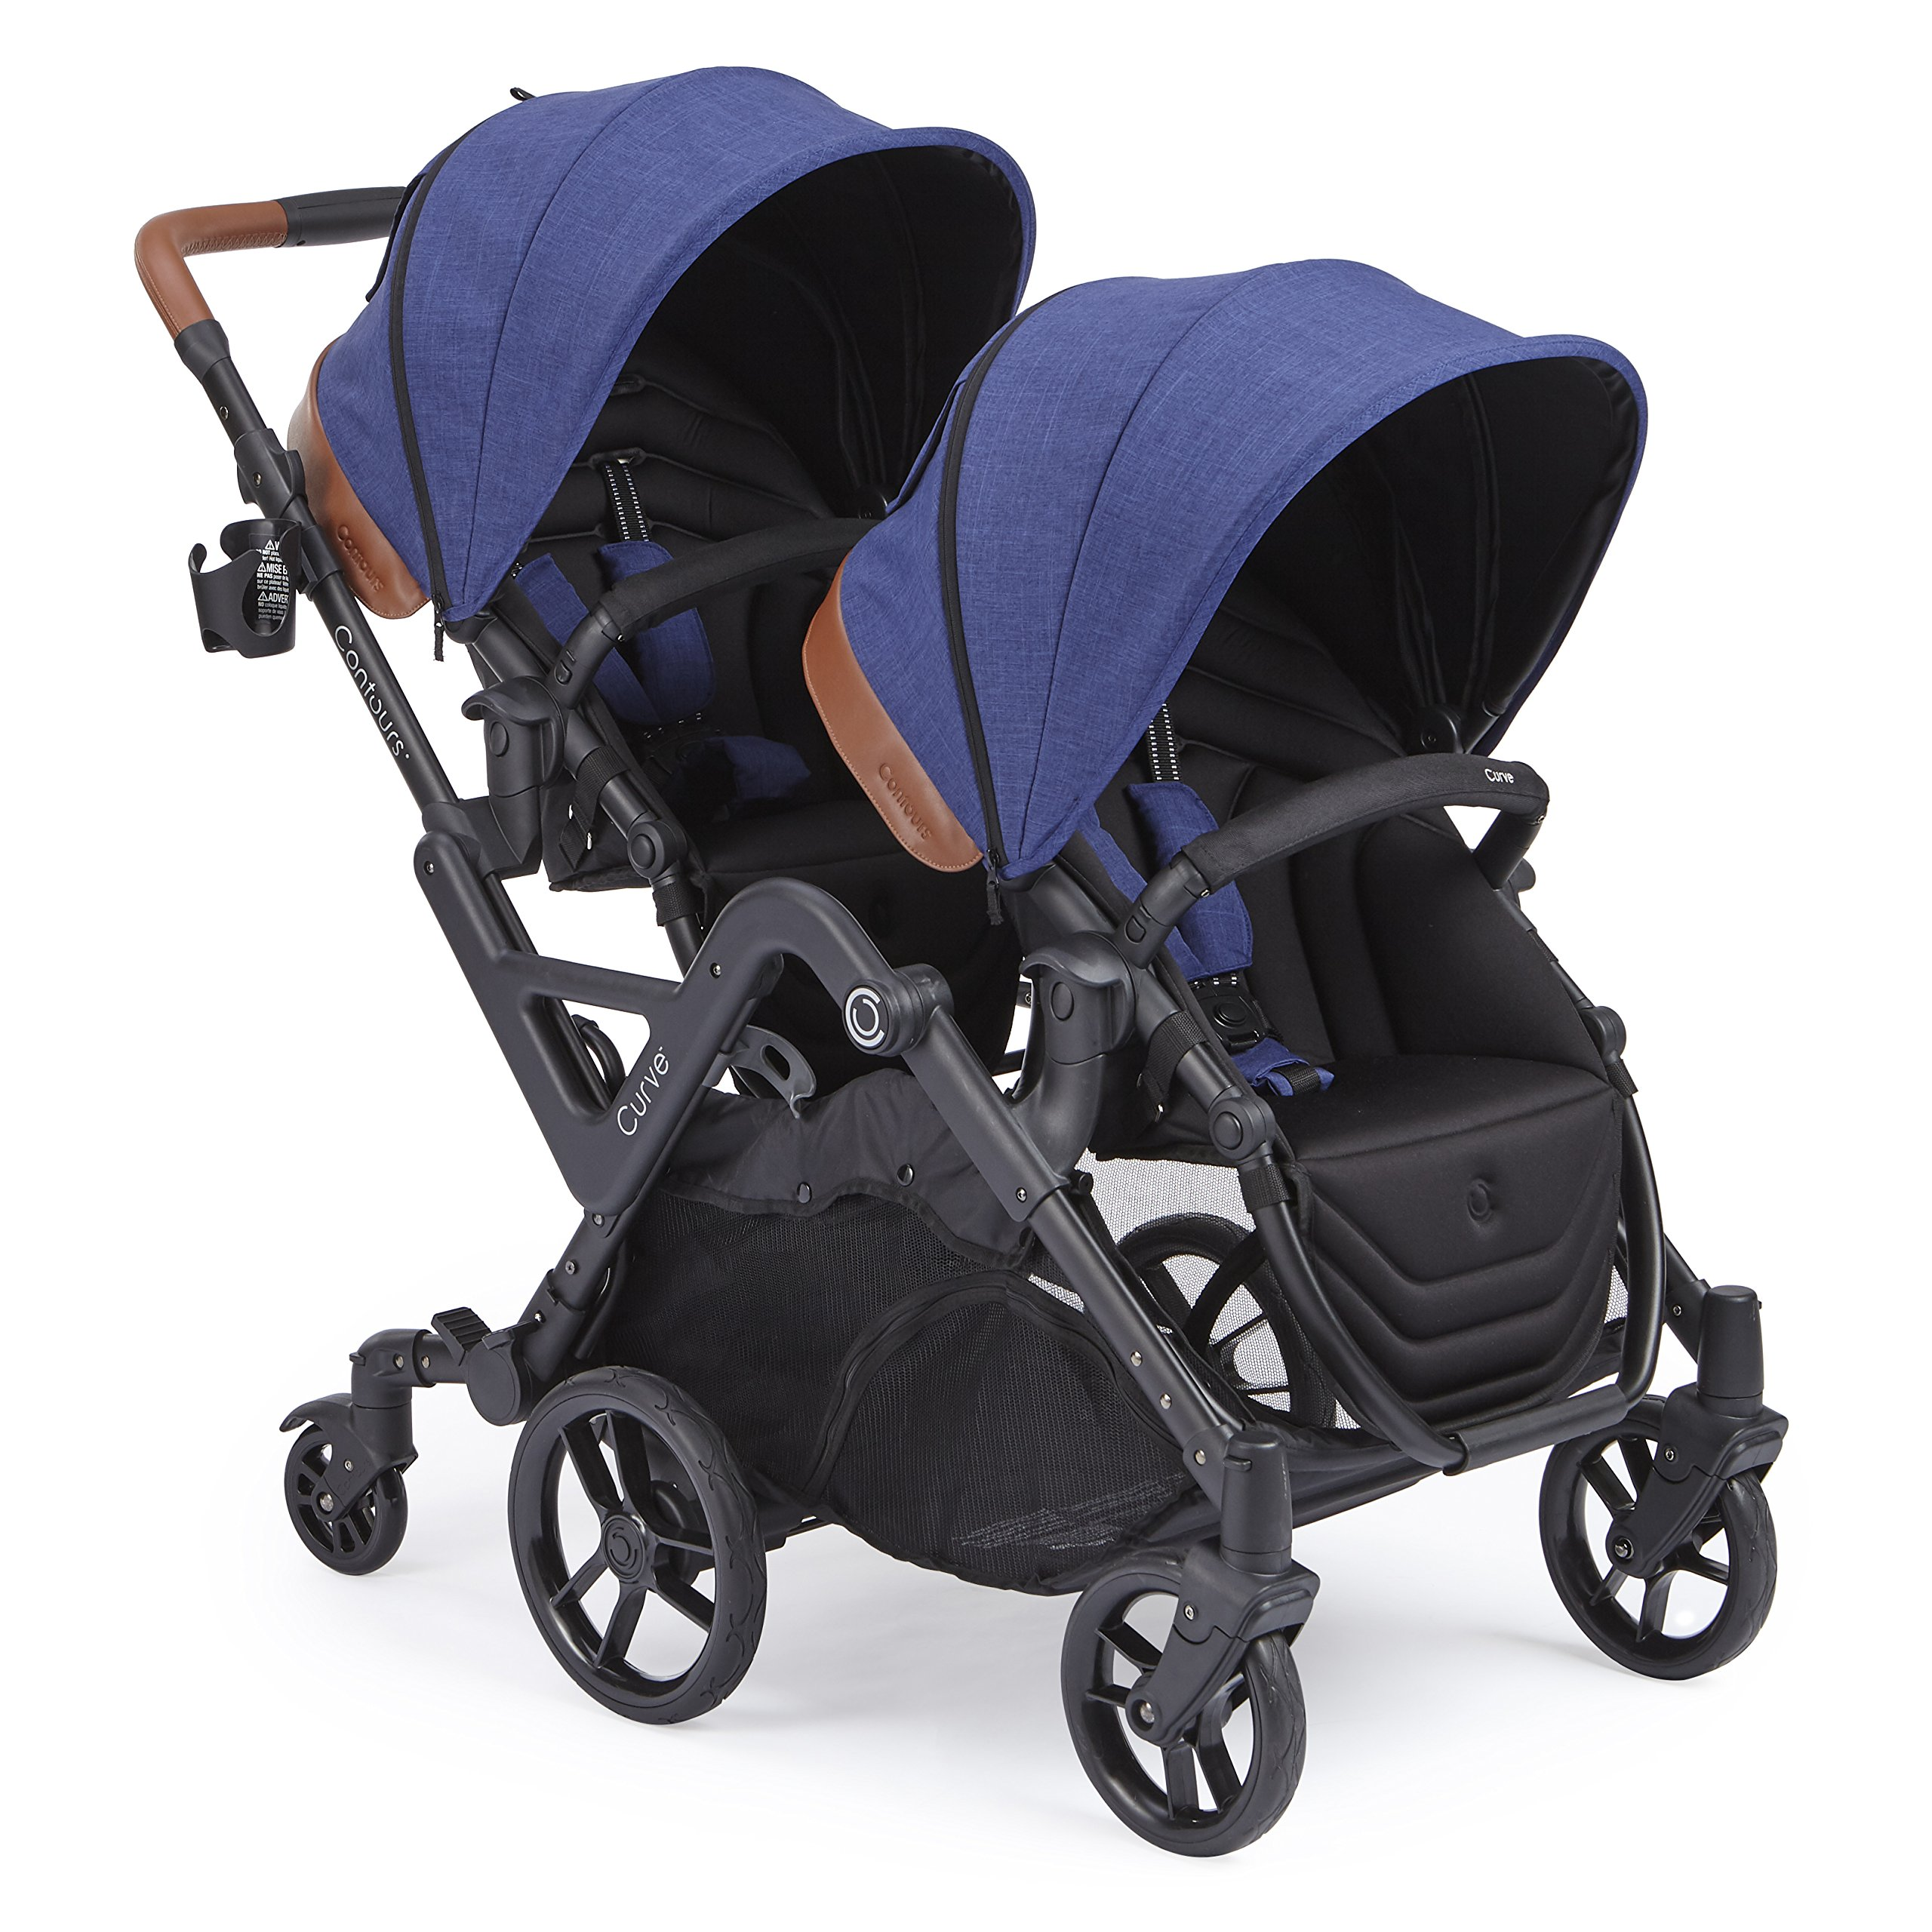 Contours Curve Tandem Double Stroller for Infants, Toddlers or Twins - 360° Turning, Multiple Seating Options, Indigo Blue by Contours